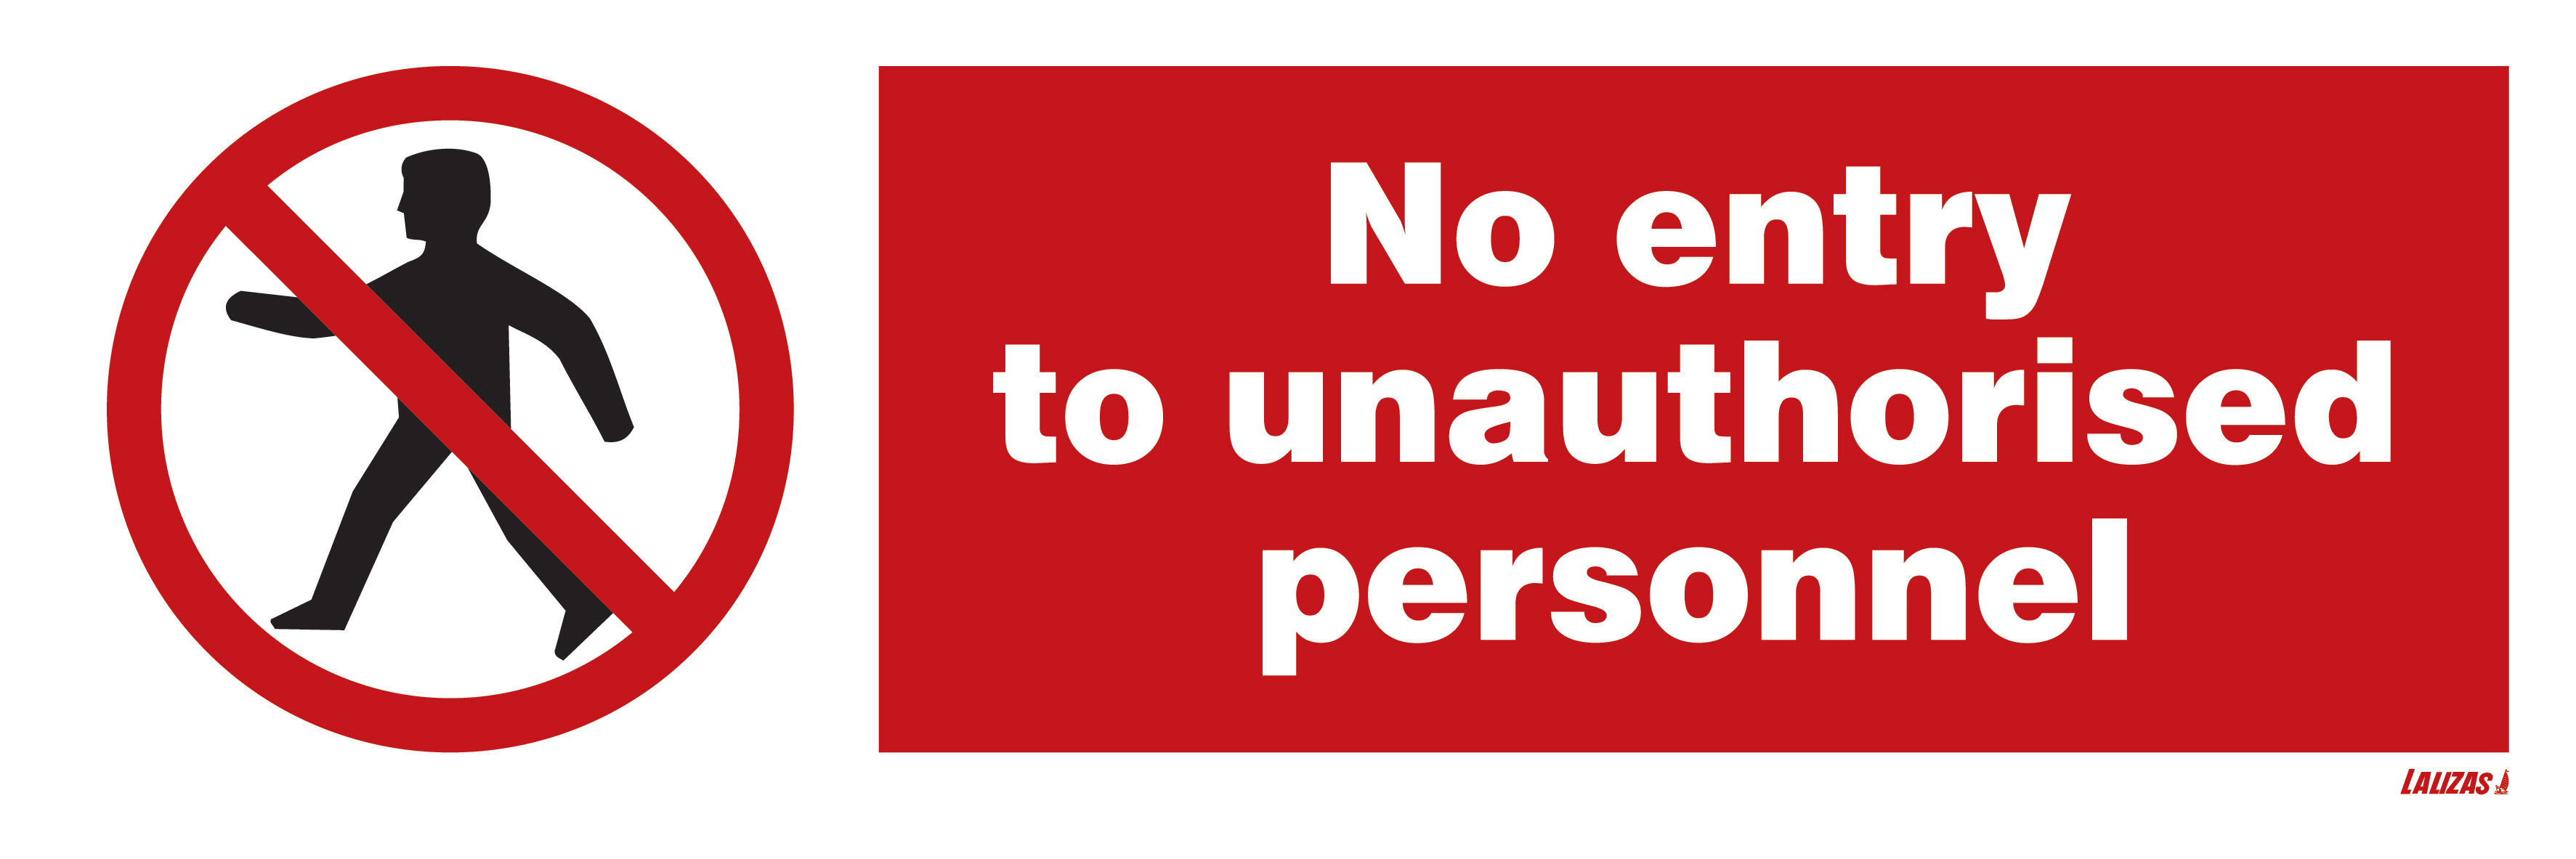 Lalizas imo signs no entry to unauthorised personnel no entry to unauthorised personnel buycottarizona